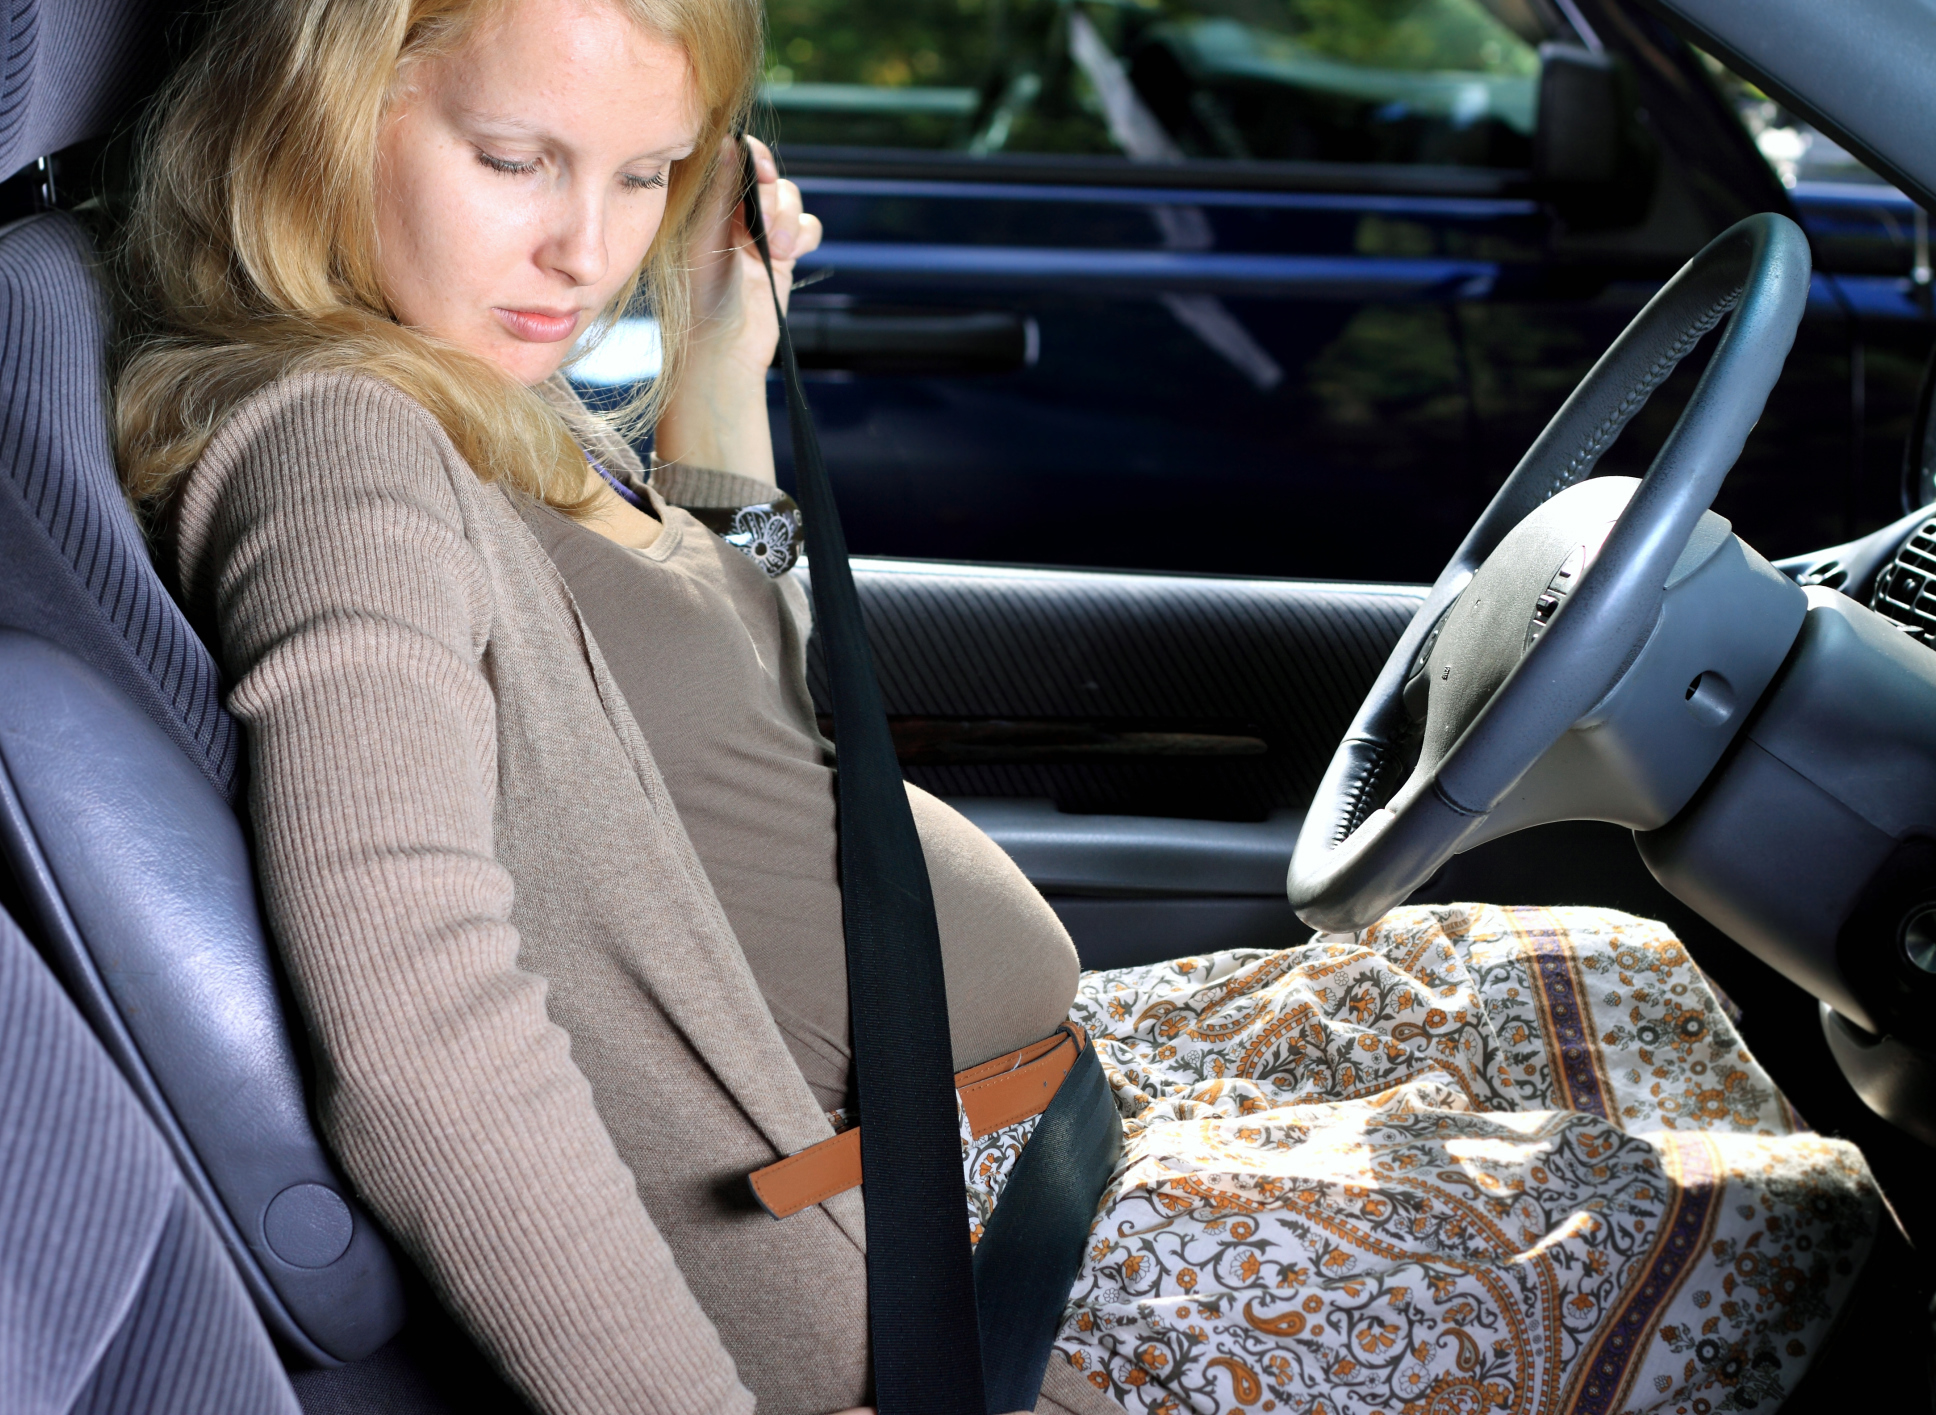 how to wear seatbelt when pregnant